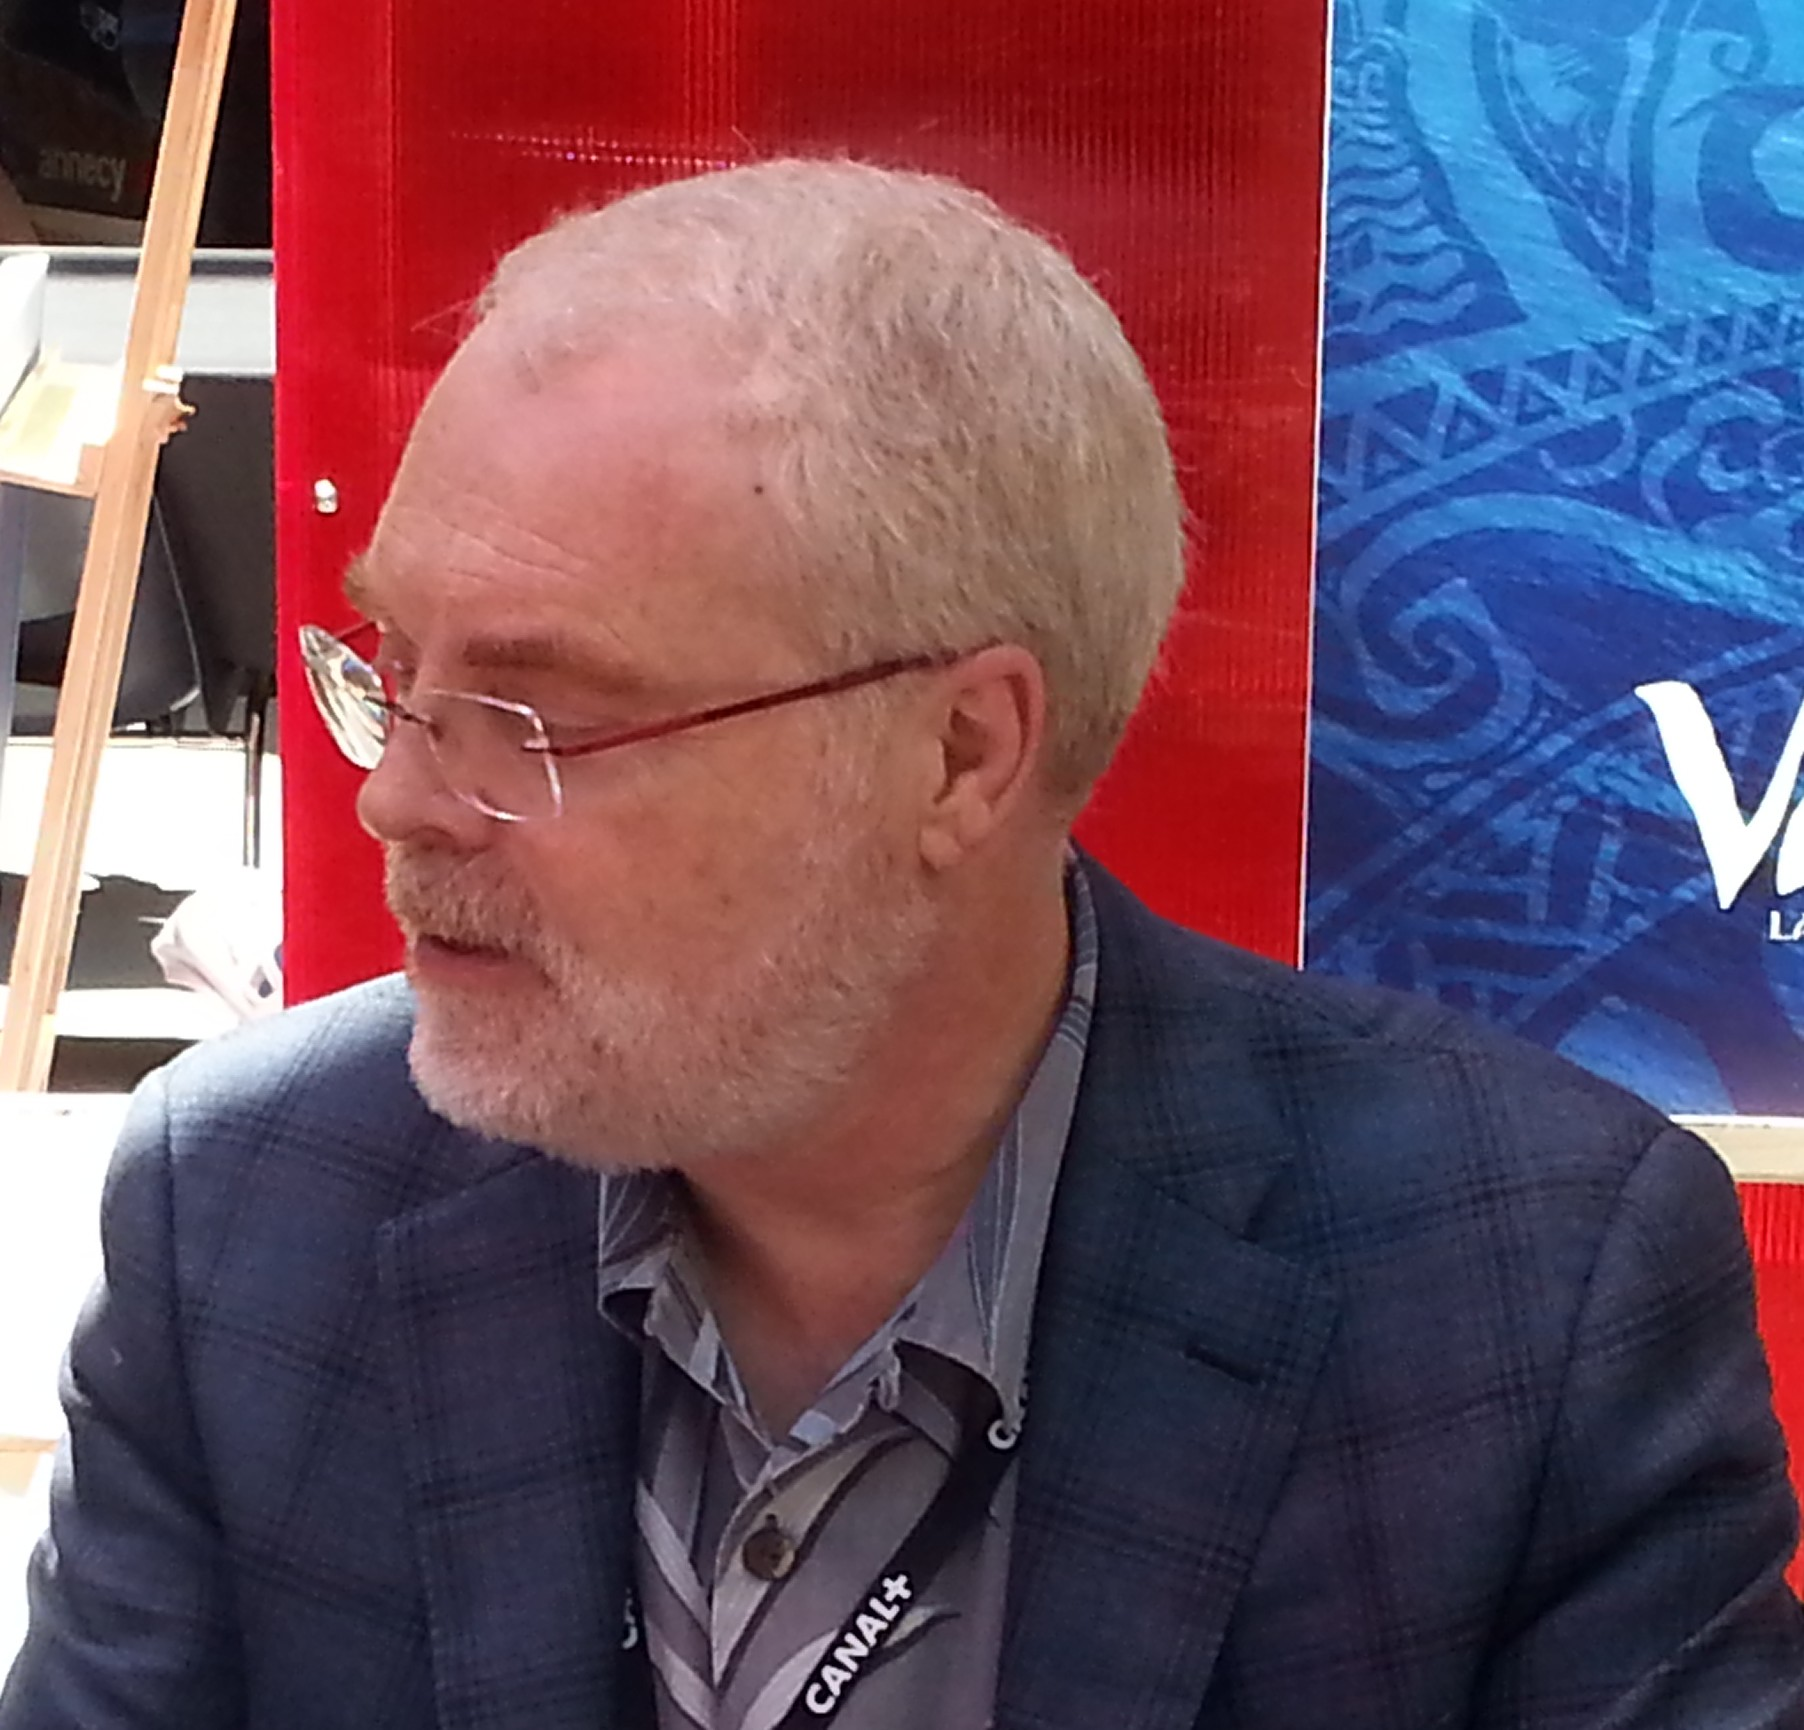 ron clements john muskerron clements john musker, ron clements net worth, ron clements aladdin, ron clements, ron clements imdb, ron clements moana, ron clements and john musker moana, ron clements movies, ron clements and john musker movies, ron clements twitter, ron clements biography, ron clements disney, ron clements and john musker, ron clements contact, ron clements films, ron clements email, ron clements wikipedia, ron clements little mermaid, ron clements and john musker interview, ron clements wiki